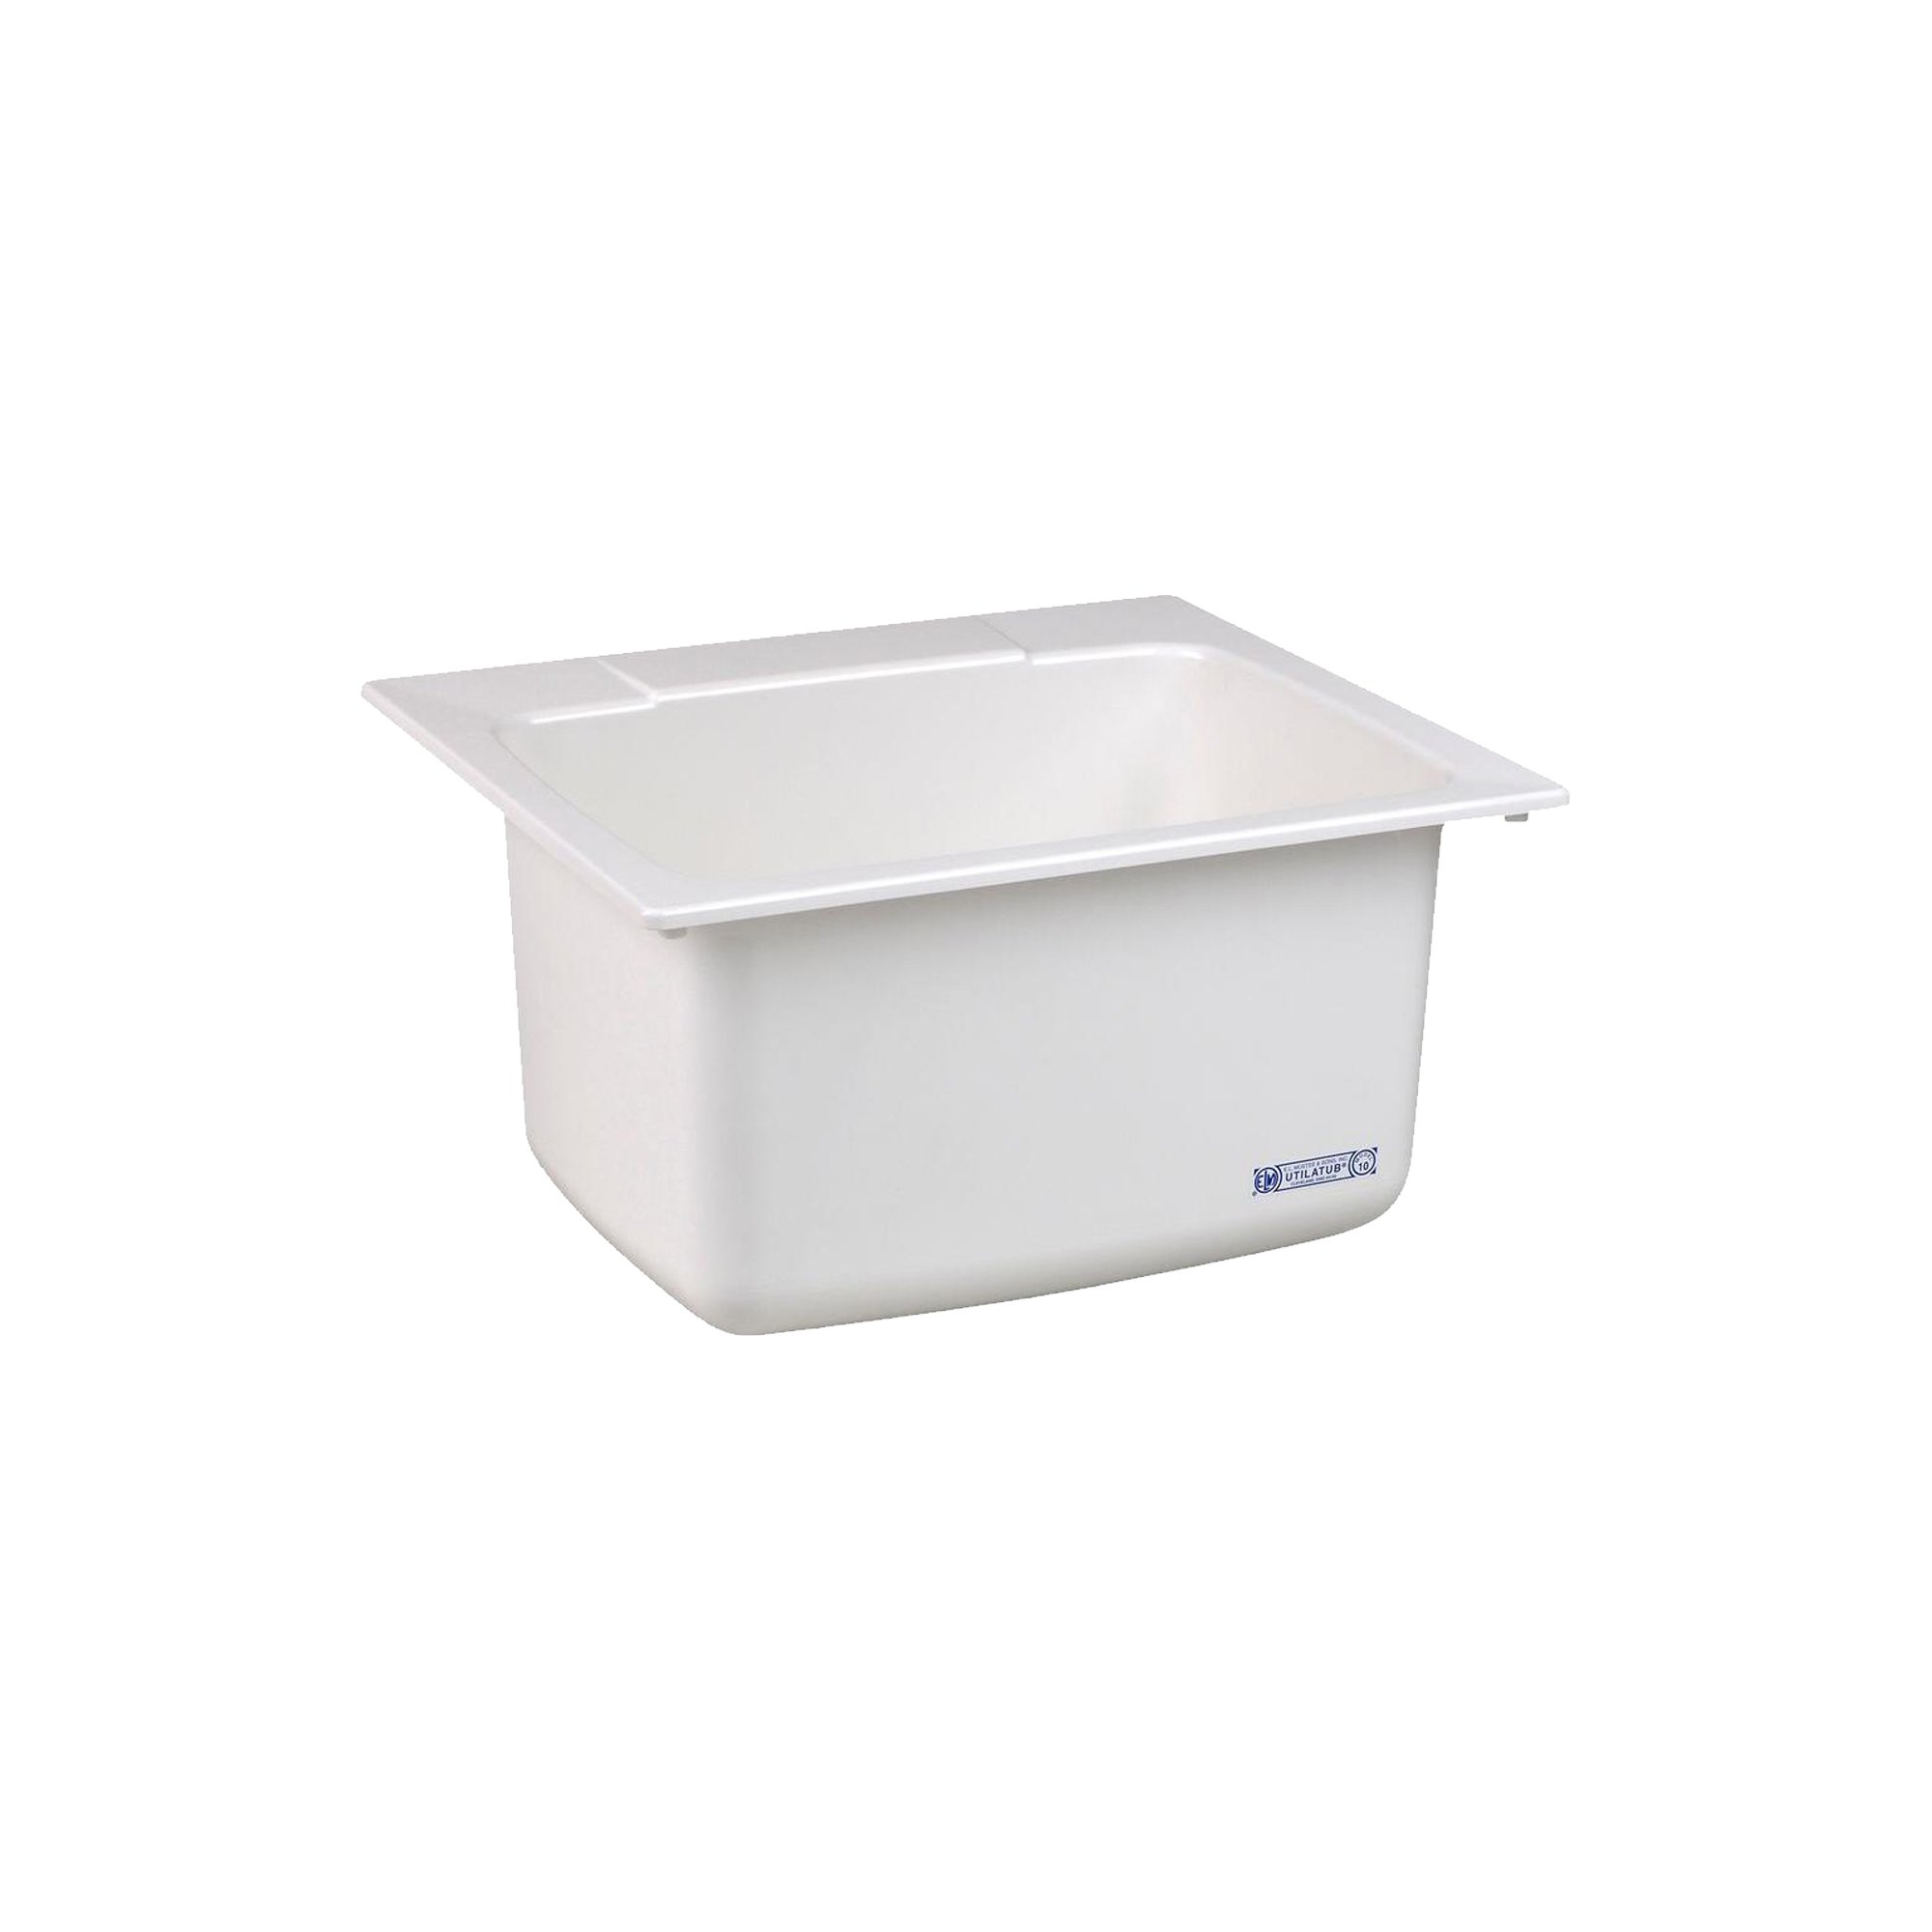 Mustee 10C Utility Sink, 22-Inch x 25-Inch, White by Mustee